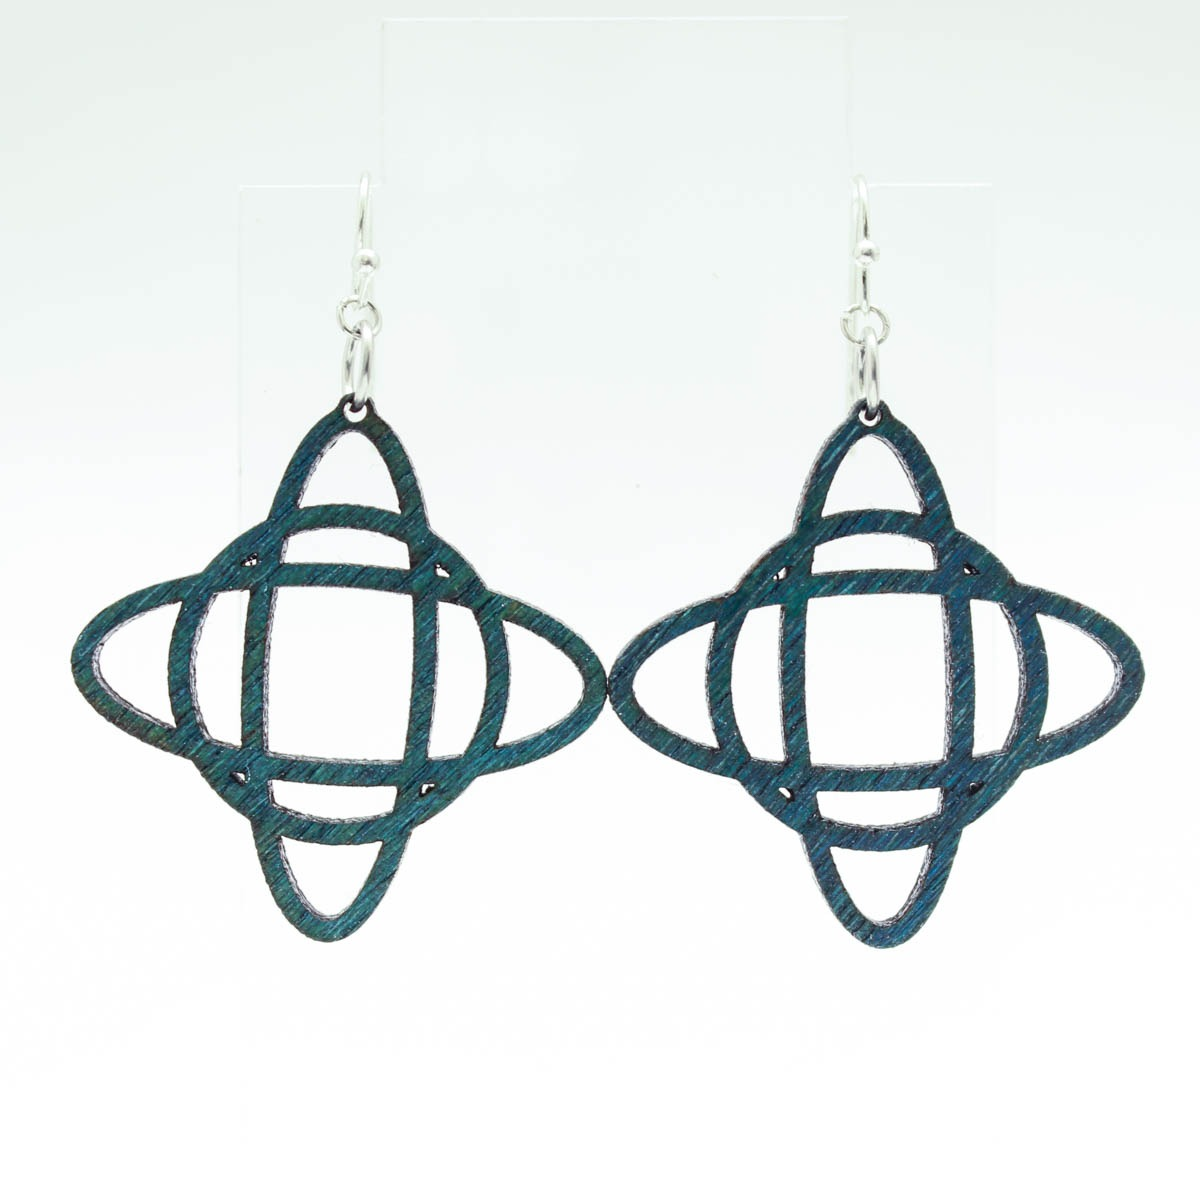 Star Loop Earrings